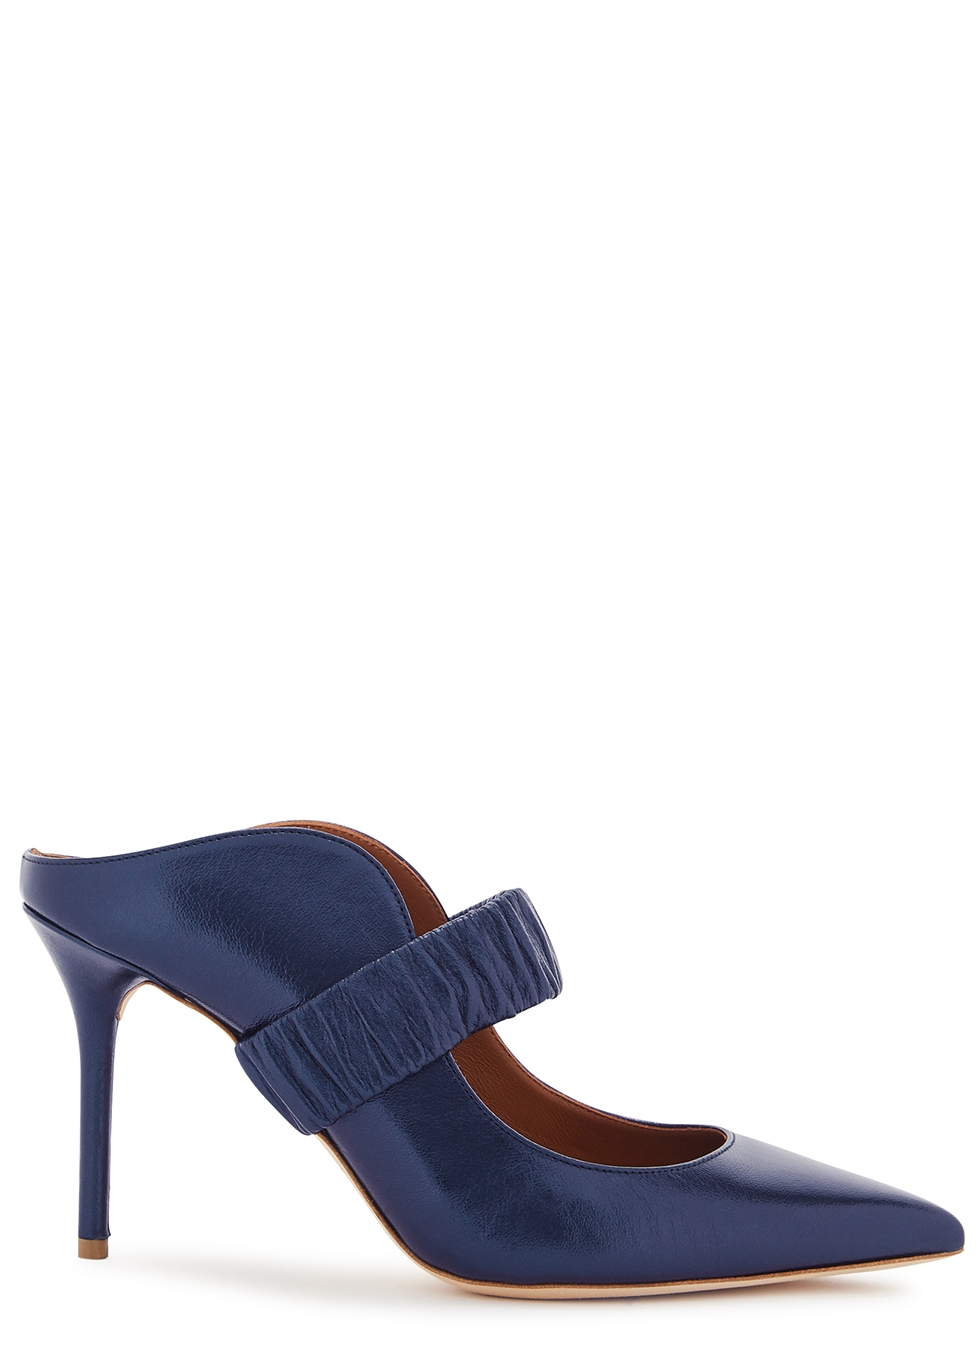 Mira 85 navy leather mules